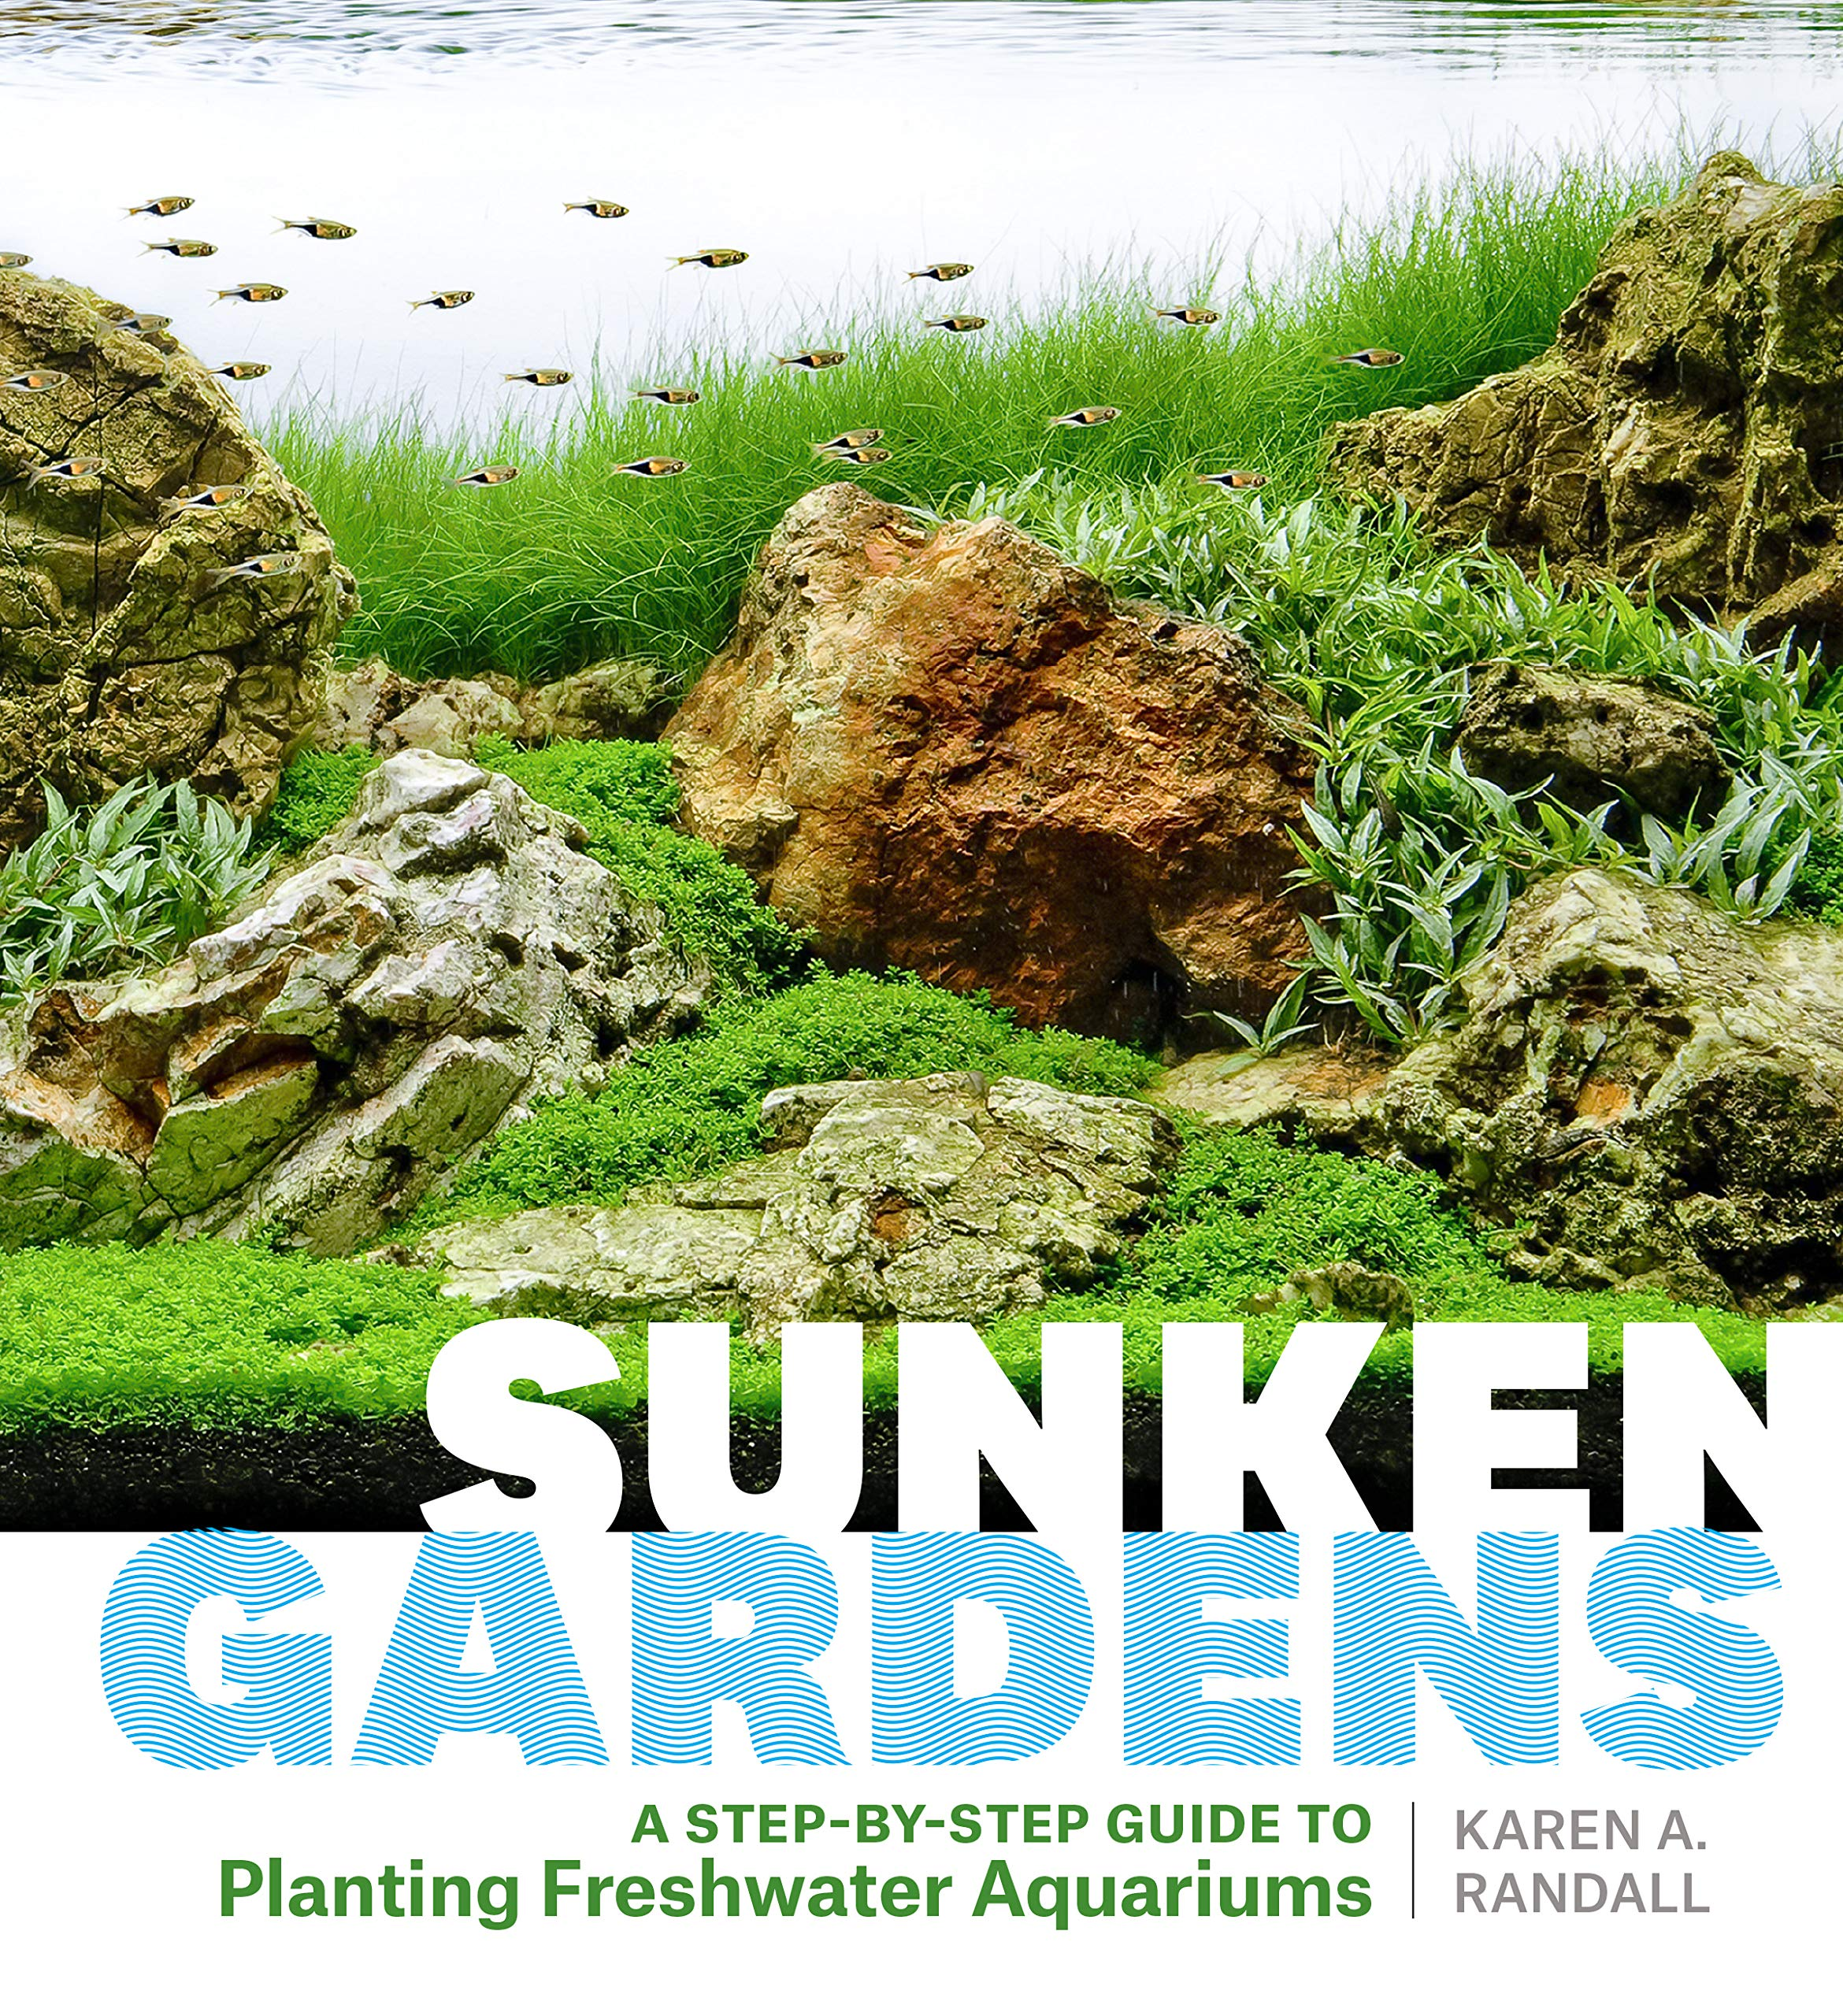 Image OfSunken Gardens: A Step-by-Step Guide To Planting Freshwater Aquariums